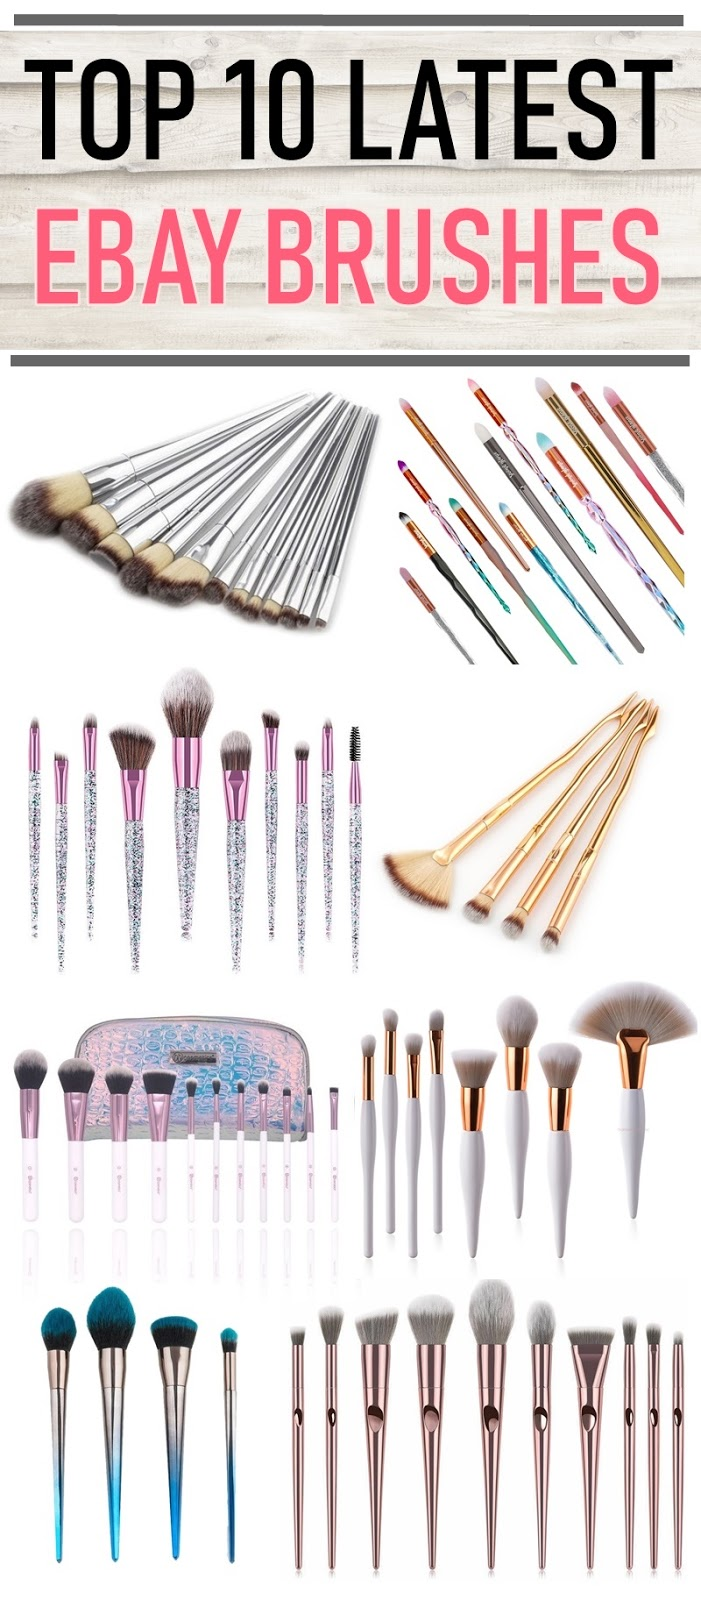 Top 10 eBay Makeup Brushes 2019